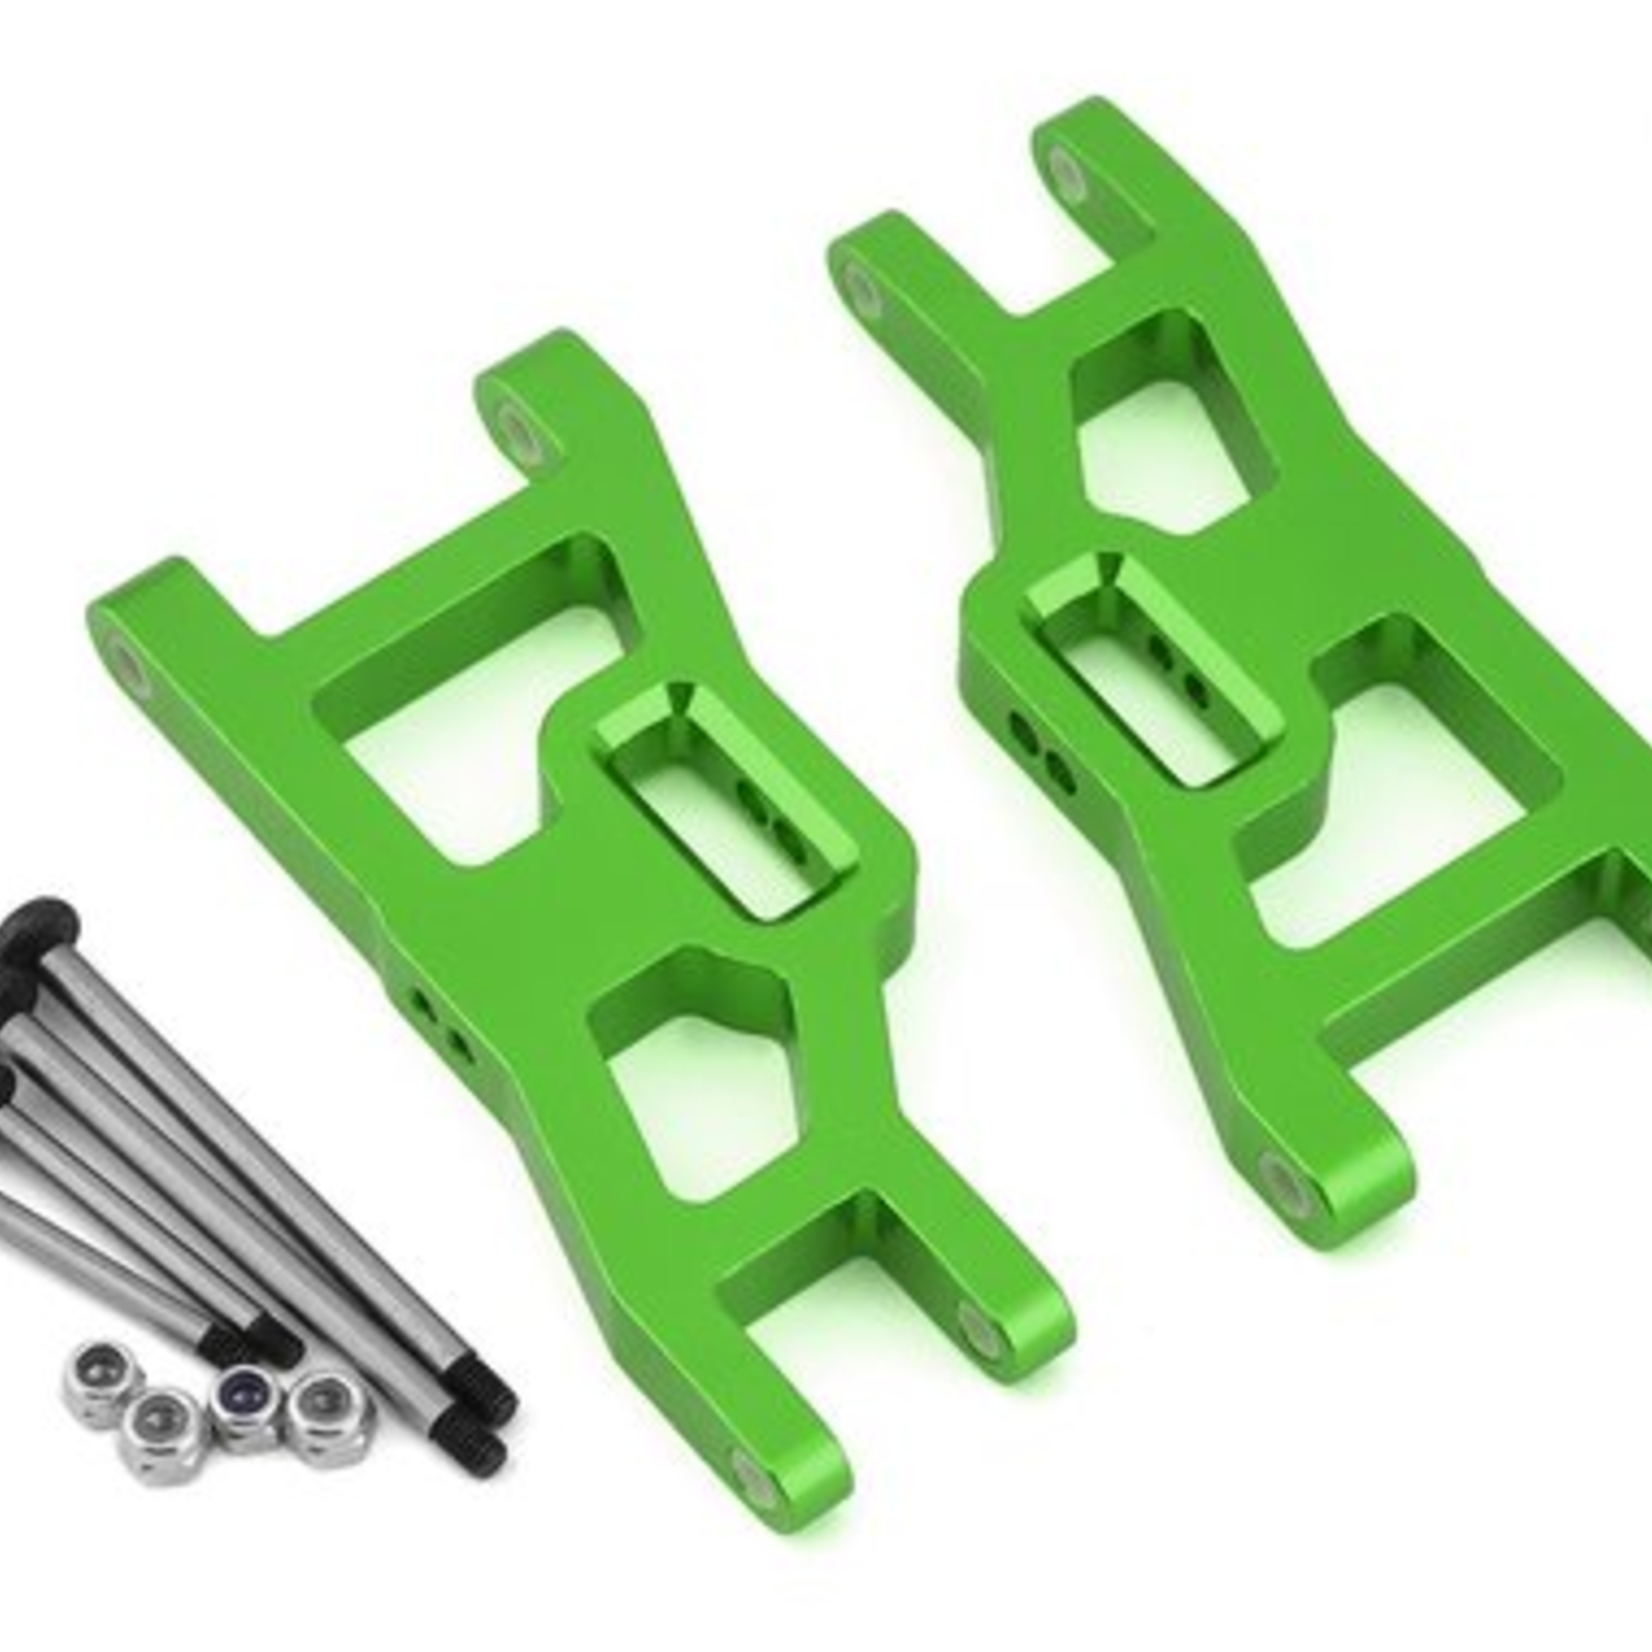 ST Racing Concepts SPTST3631XG ST Racing Concepts Green Heavy Duty Front Suspension Arms Kit w/ Lock-Nut Hinge-Pins, for Traxxas Rustler/Stampede (Green)